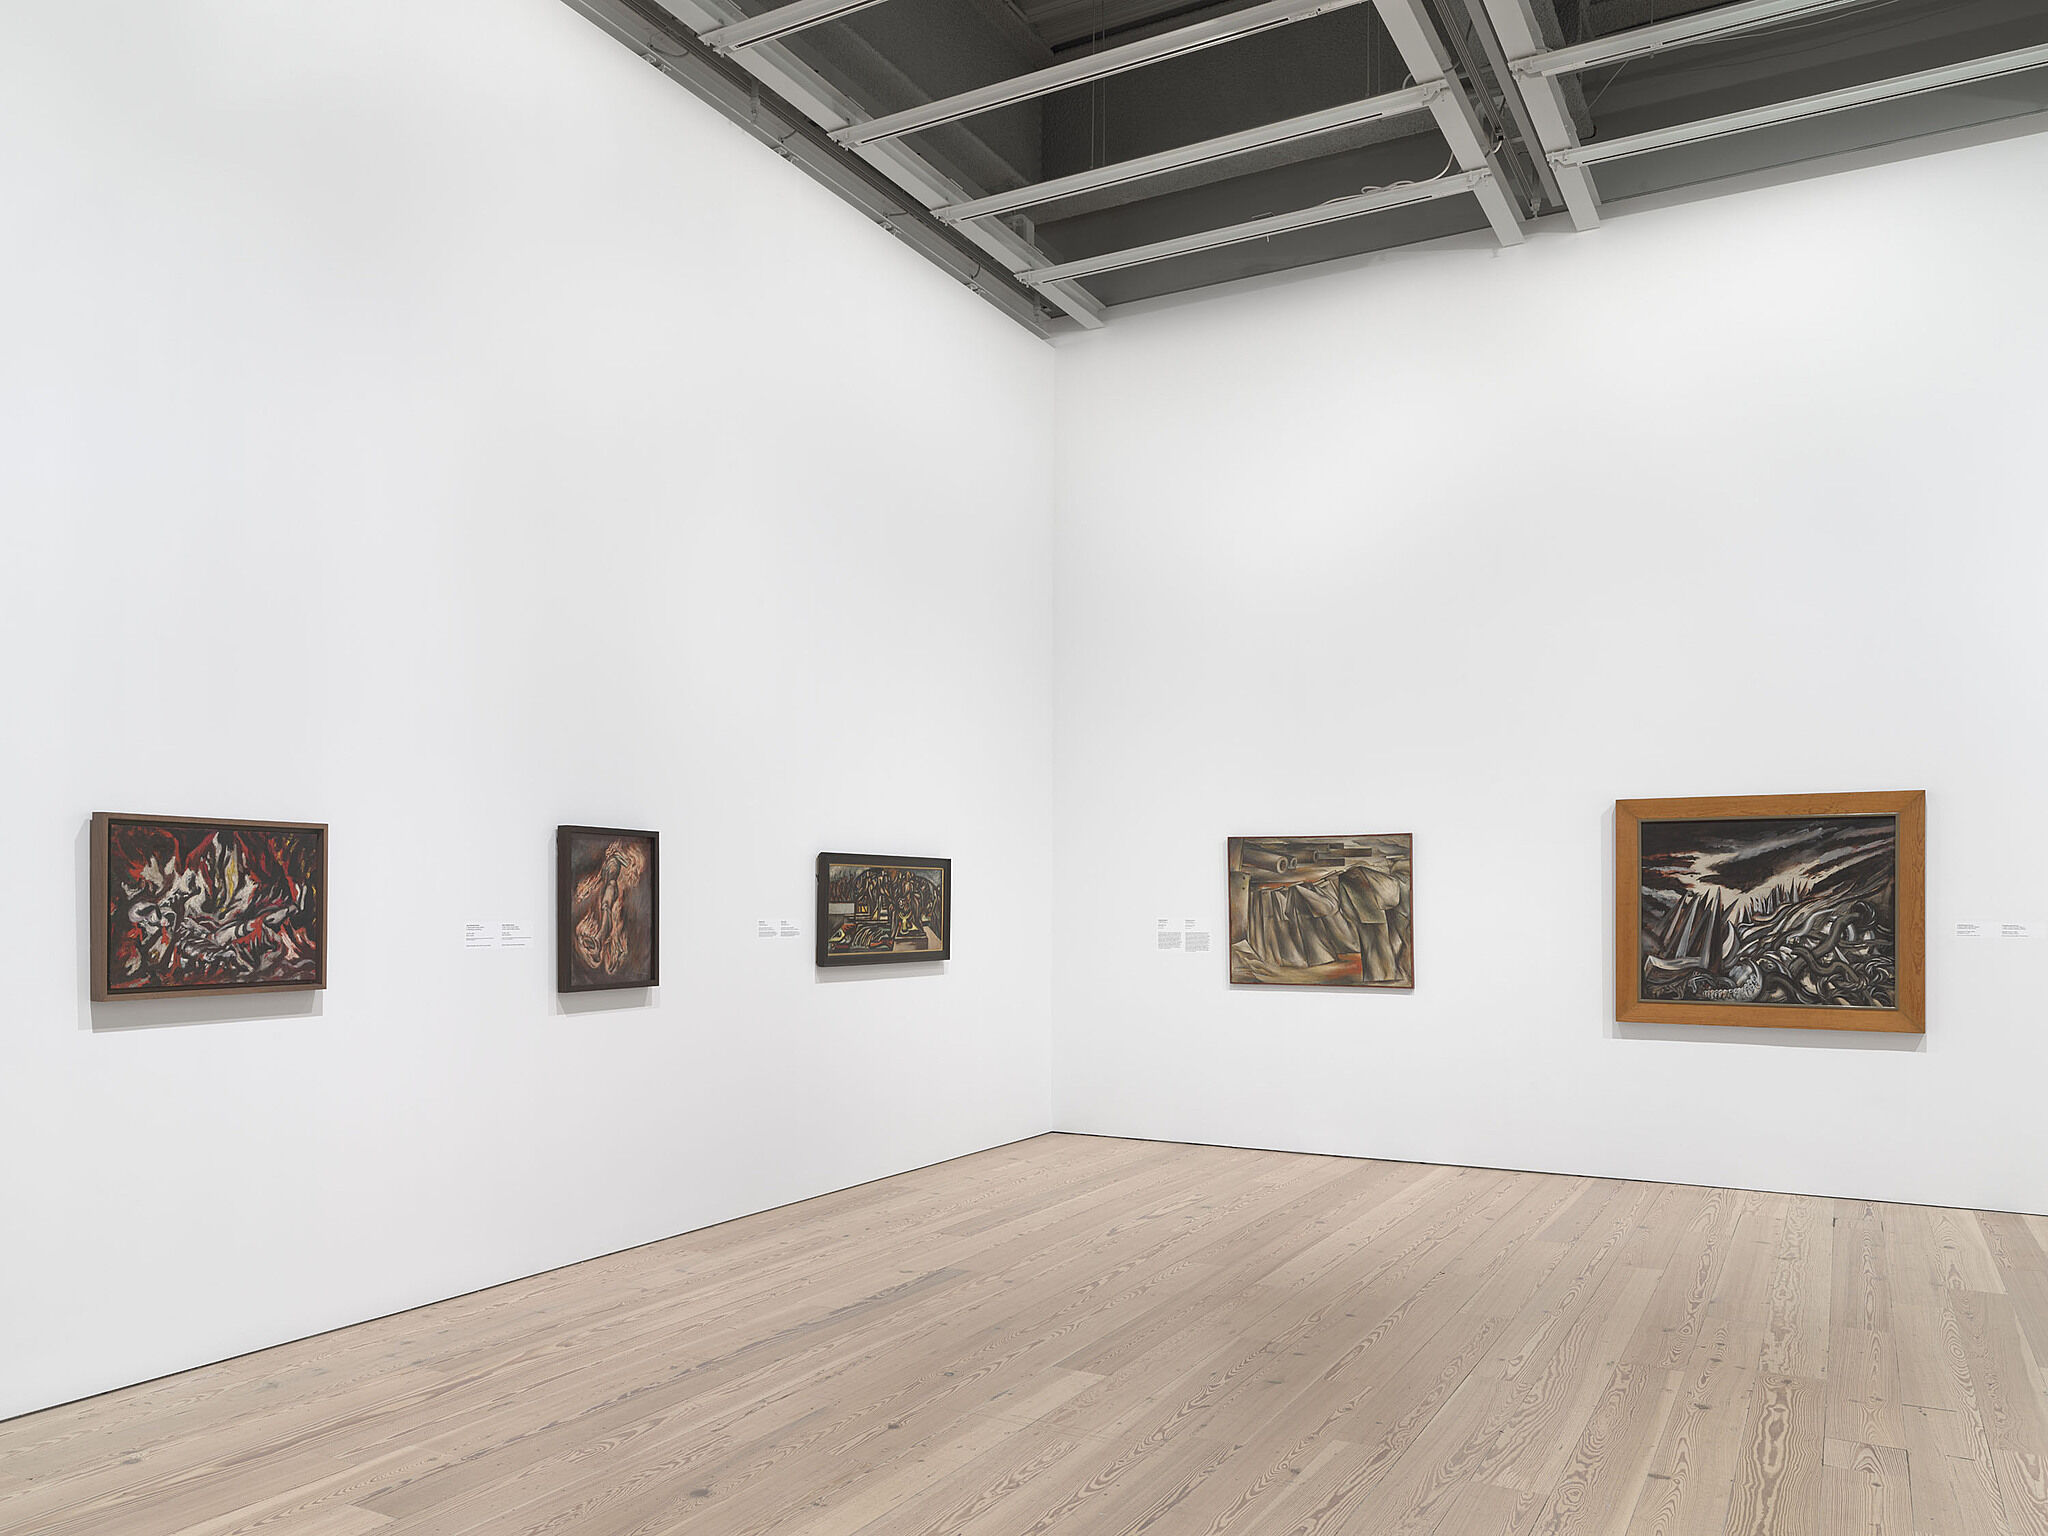 A photo of the Whitney galleries with paintings on the walls.